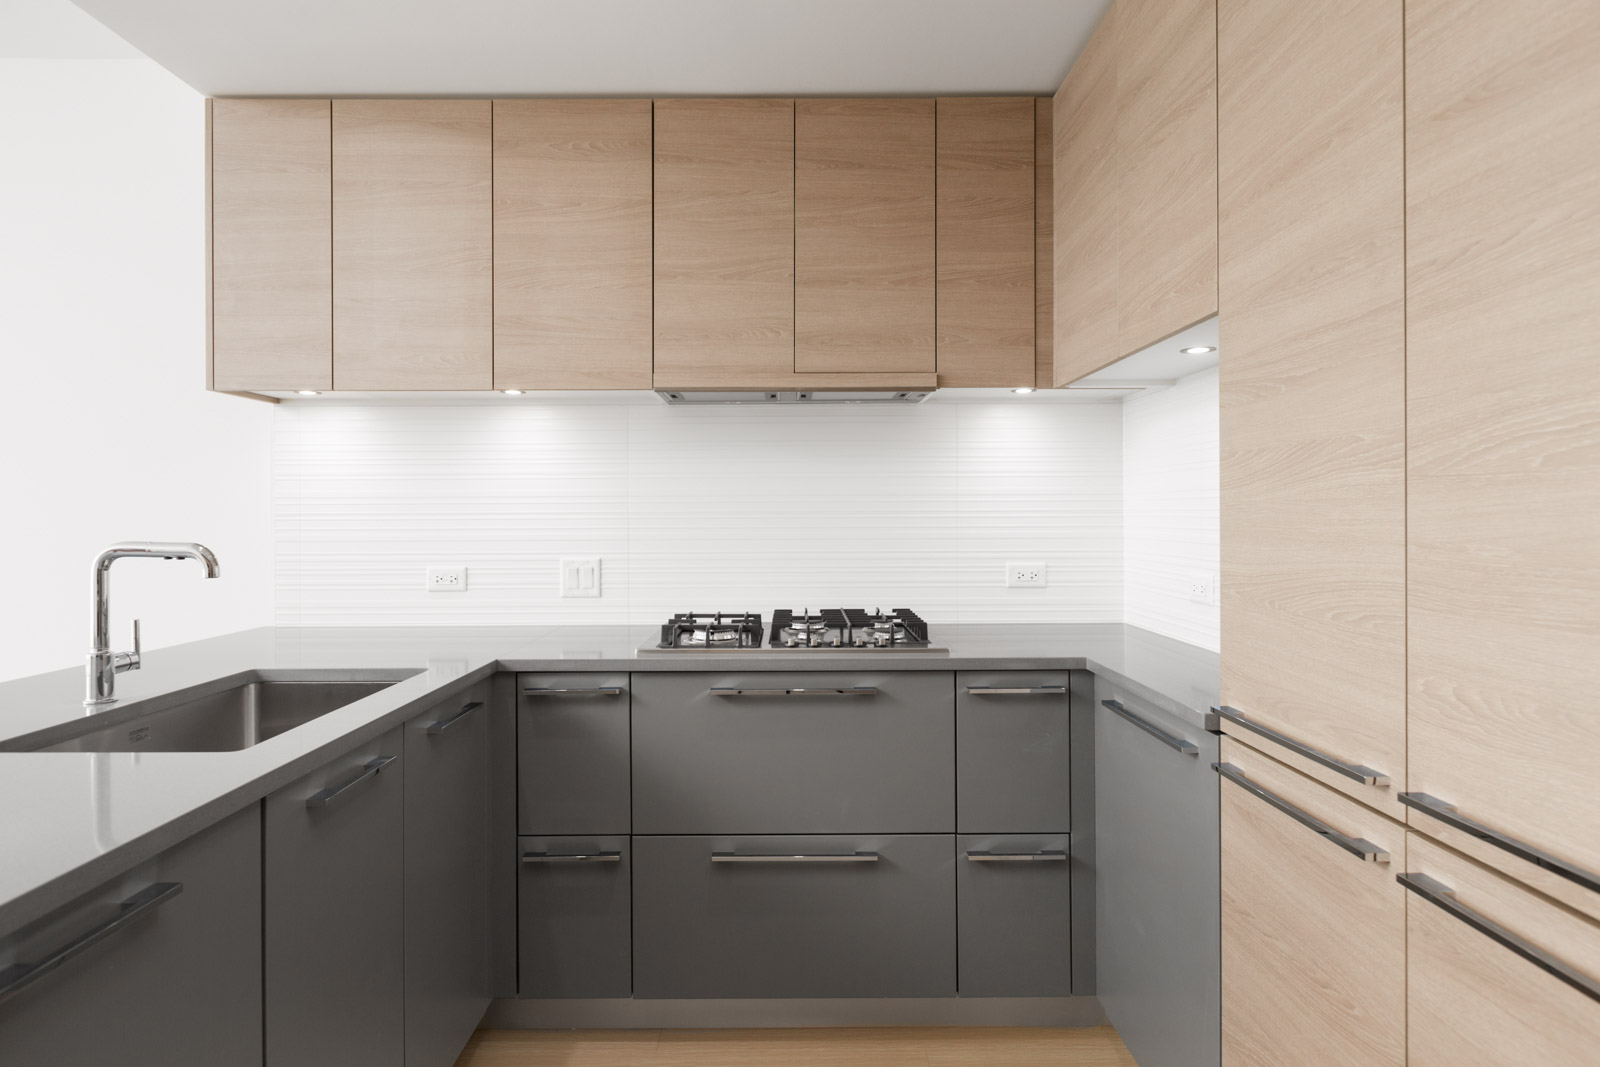 kitchen wall with stovetop in empty brand new condo managed by birds nest properties at kings crossing in burnaby